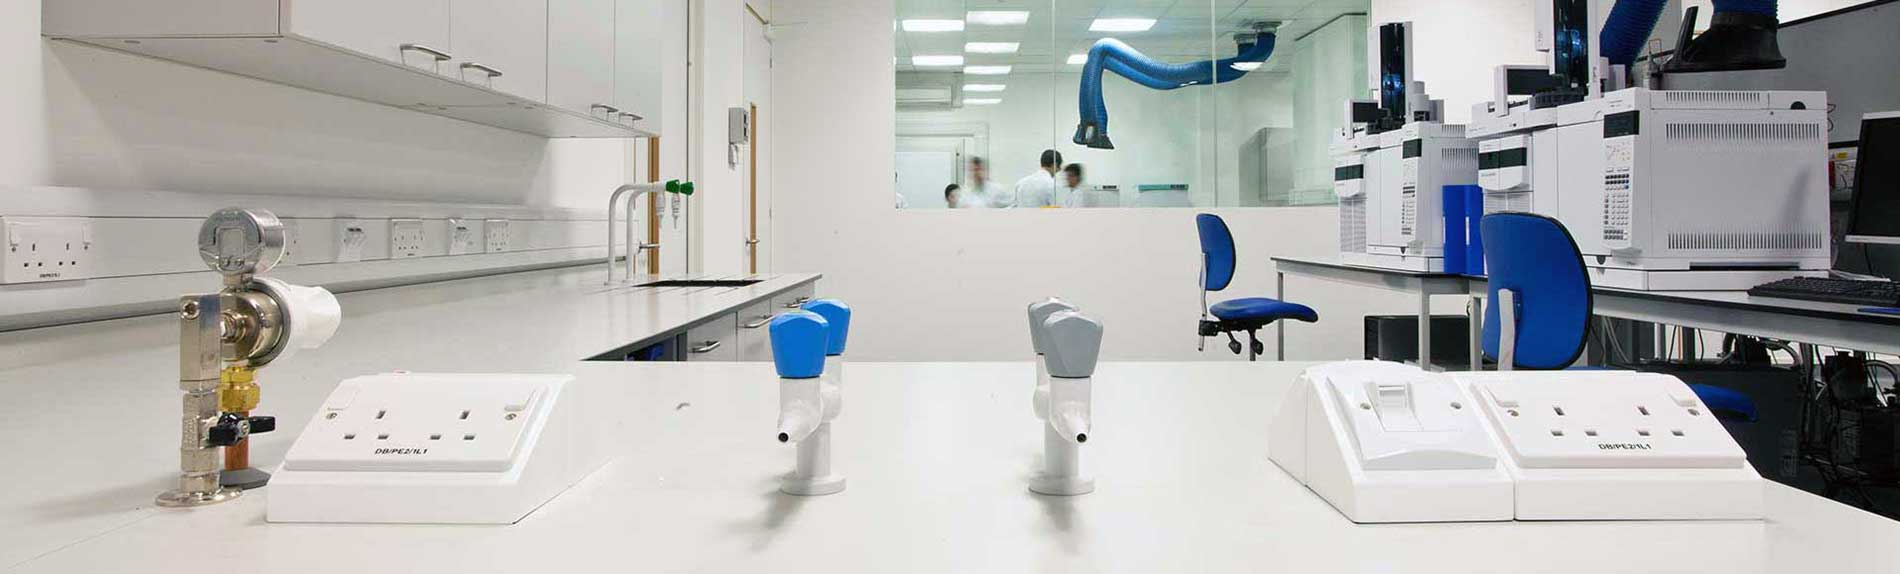 lab worktops header image